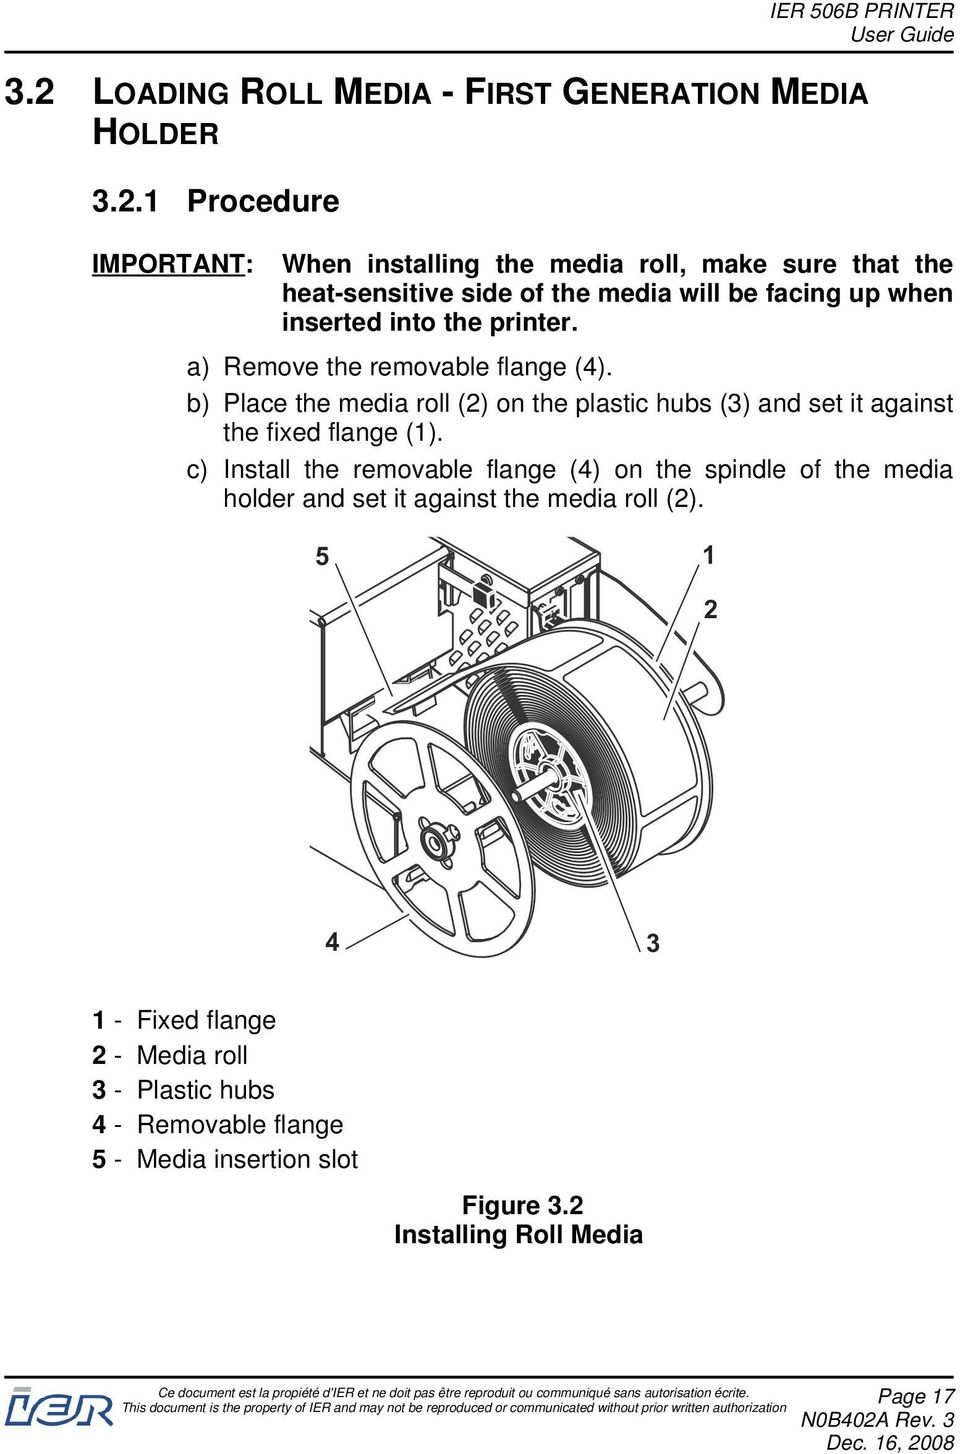 b) Place the media roll (2) on the plastic hubs (3) and set it against the fixed flange (1).